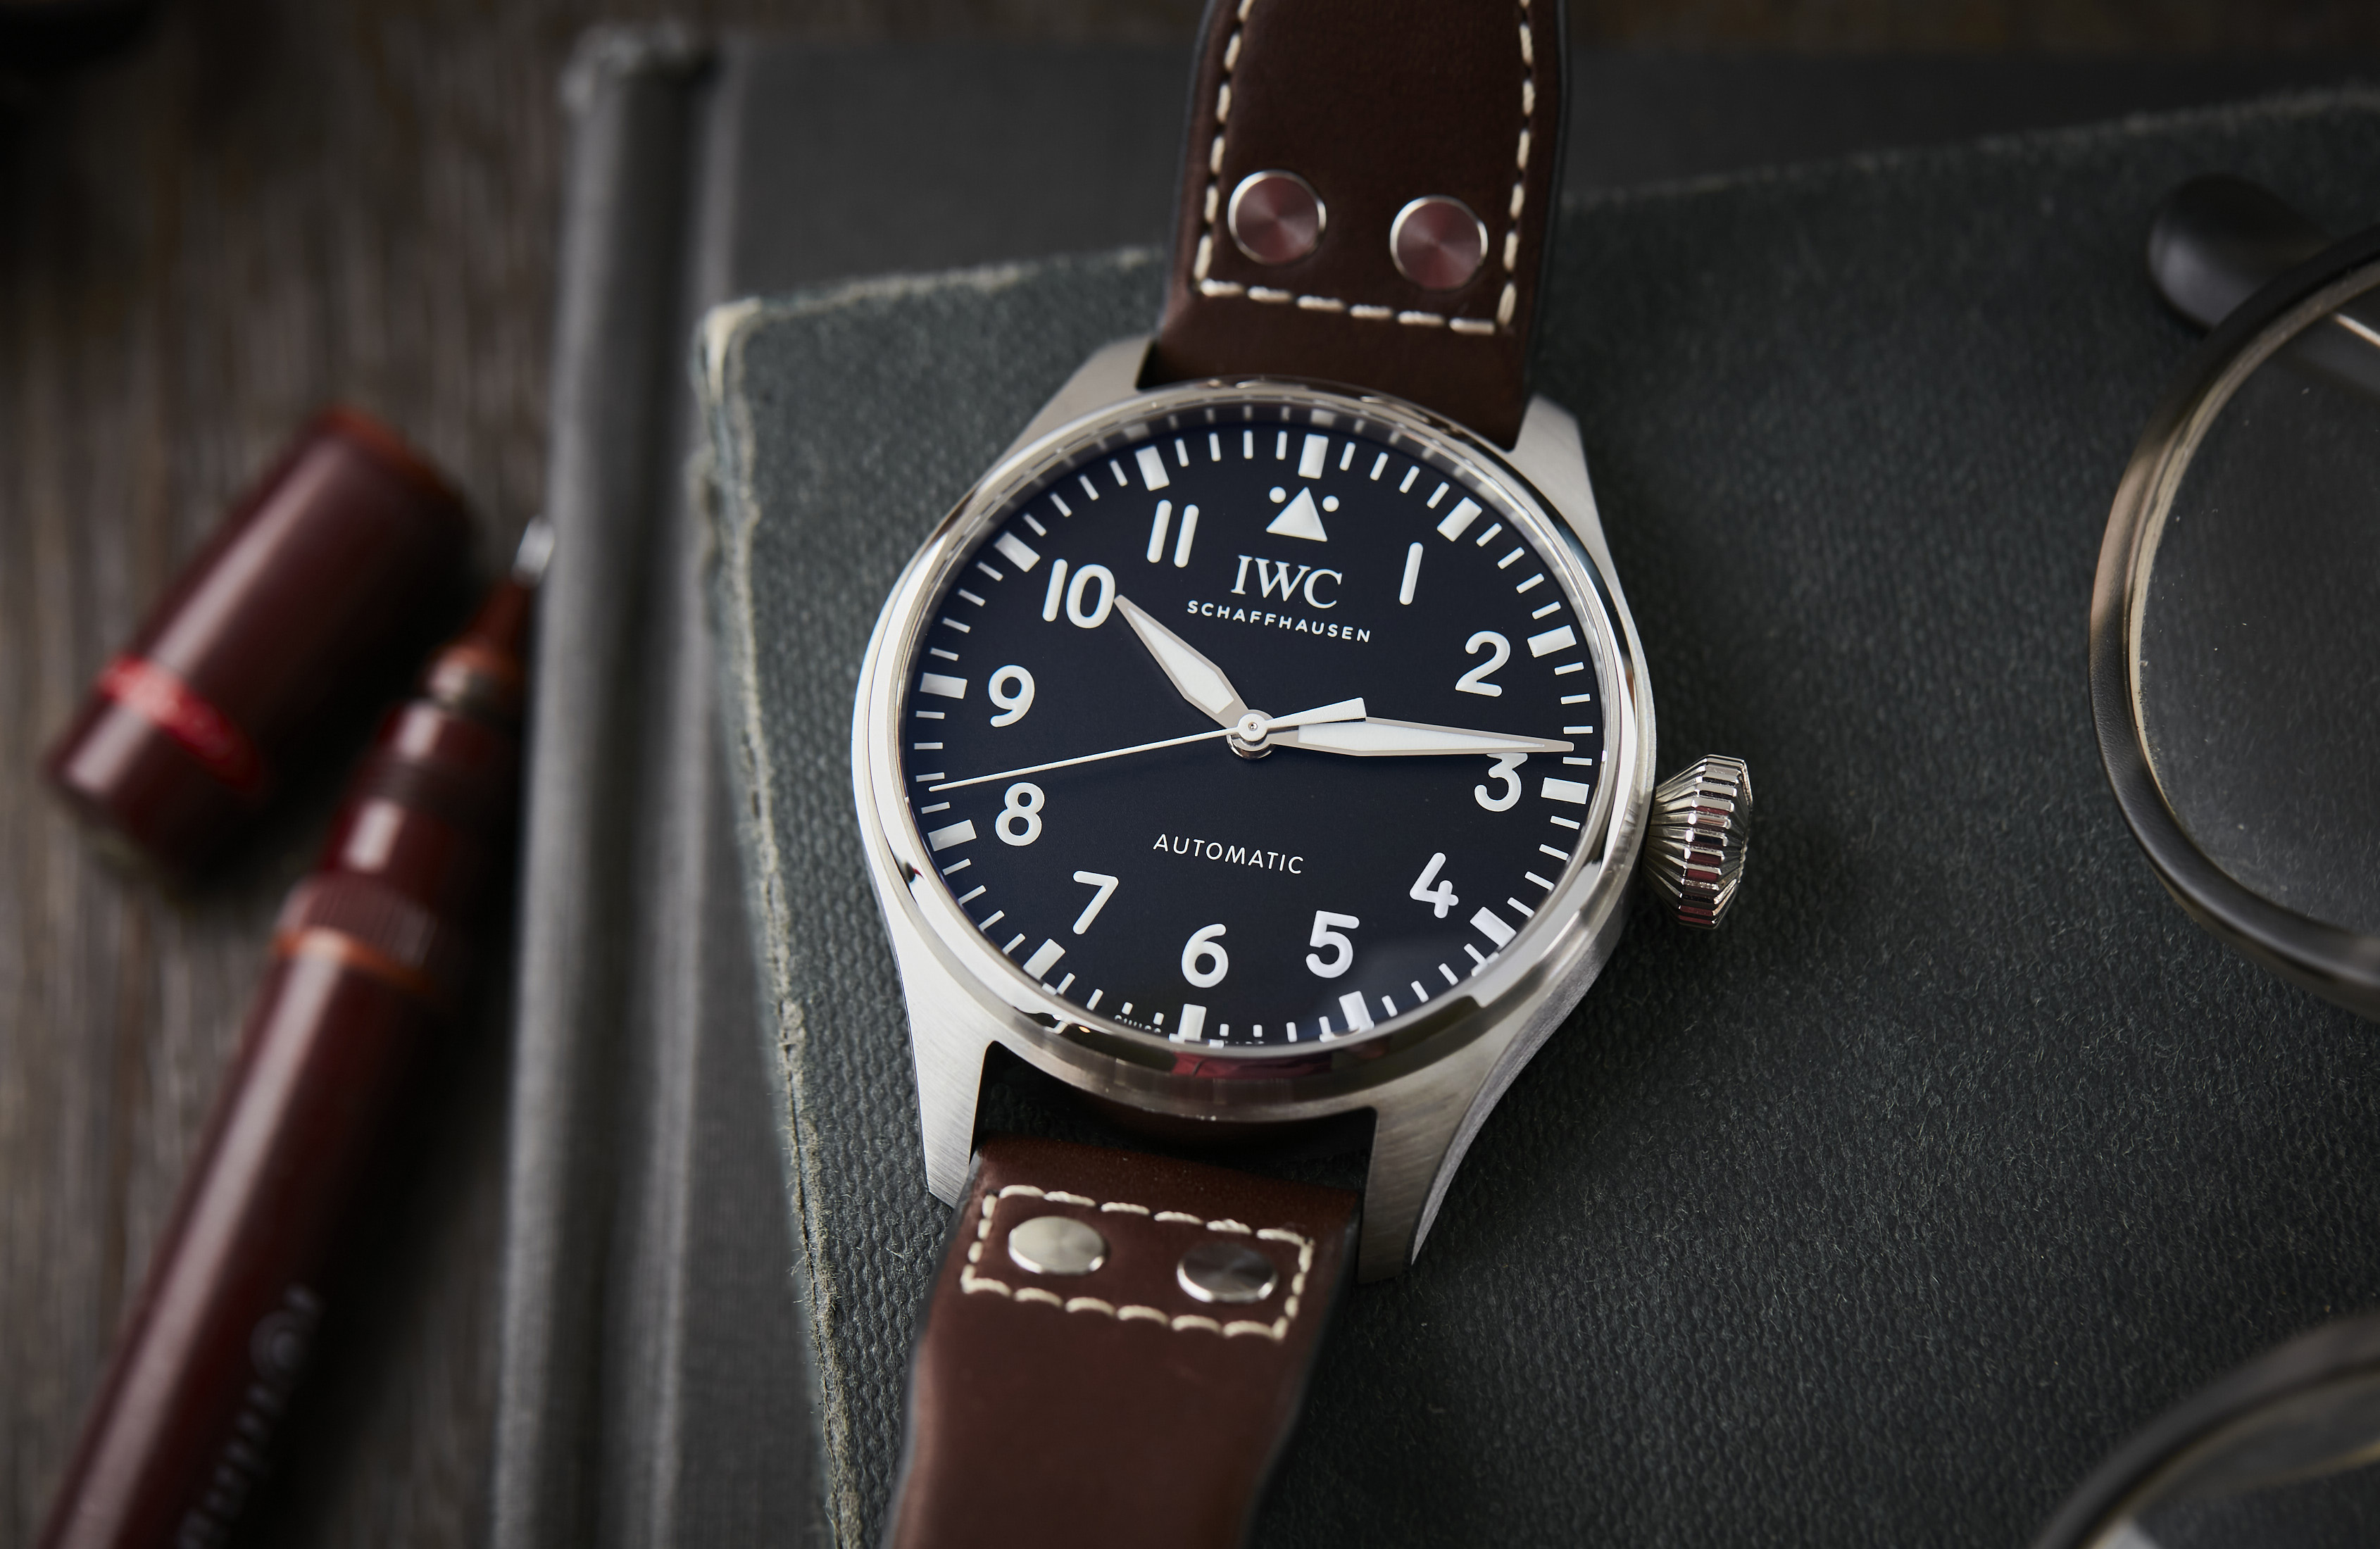 VIDEO: How does the new IWC Big Pilot 43 differ from the original Big Pilot 46?